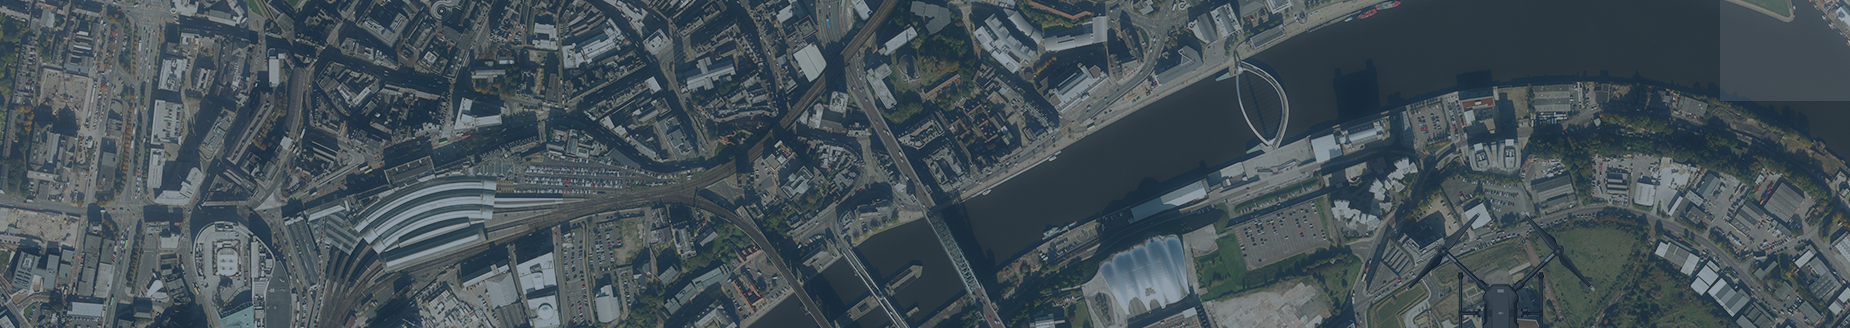 Aerial Survey Services in London | Aerial Survey Services in Saudi Arabia